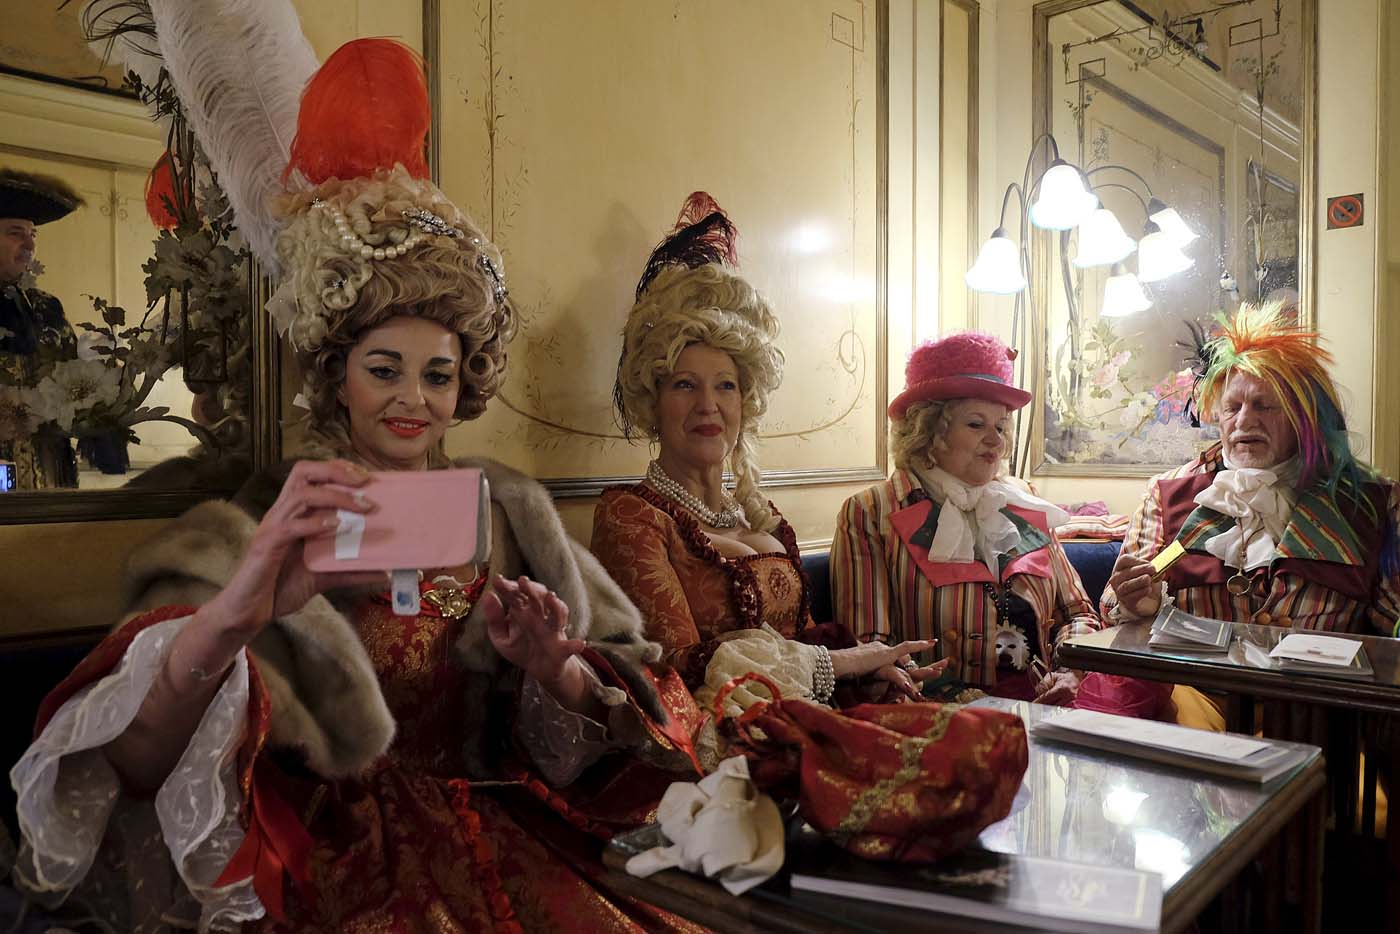 Revellers are seen in the Caffe Florian coffee shop in Saint Mark's Square during the Venice Carnival, Italy January 31, 2016. REUTERS/Manuel Silvestri